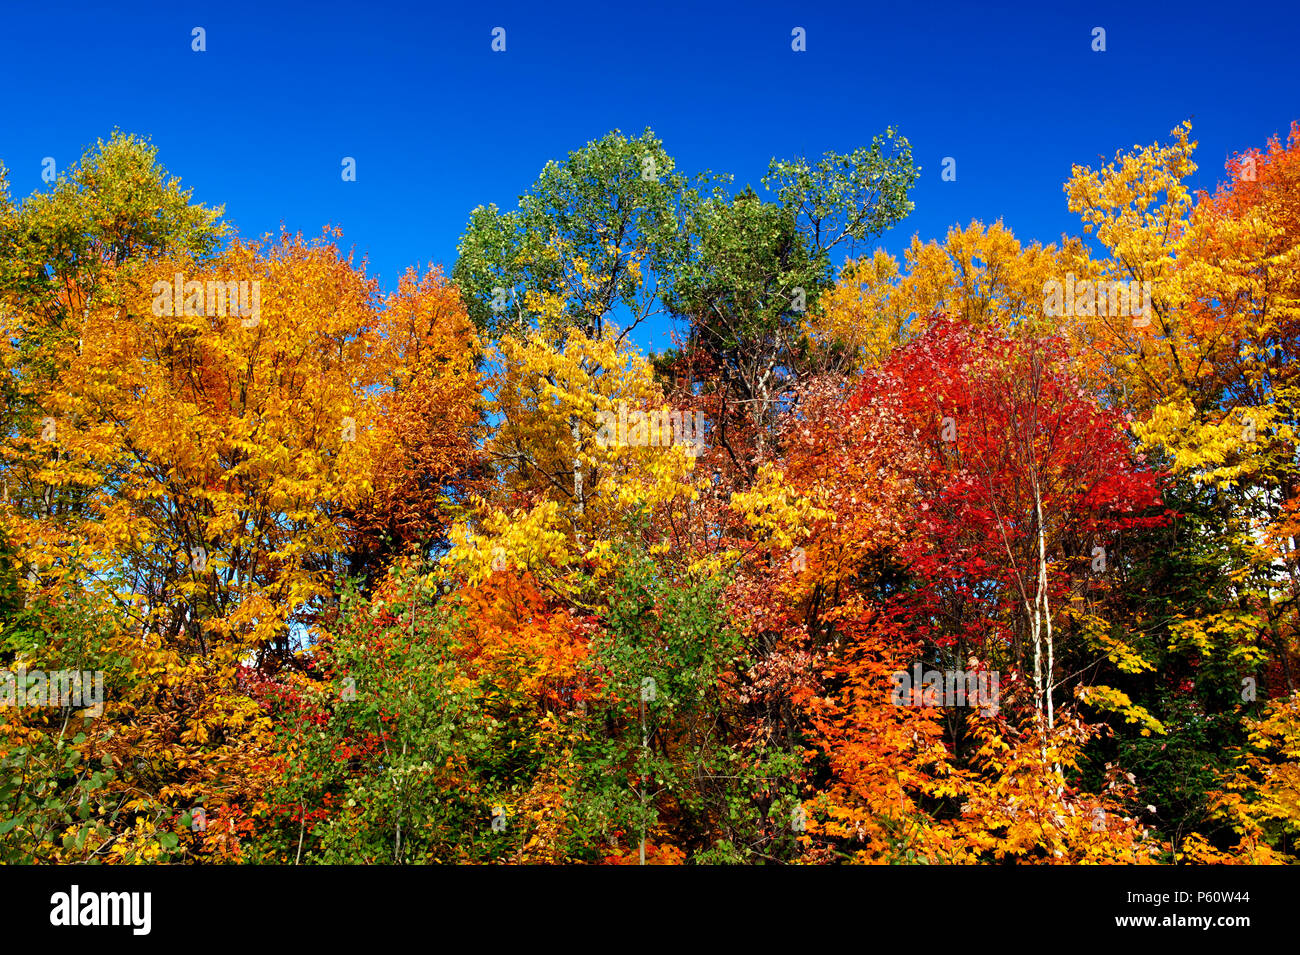 Flamboyant autumn colors in the Laurentians, province of Quebec, Canada. Multicolored trees against a deep blue sky. - Stock Image